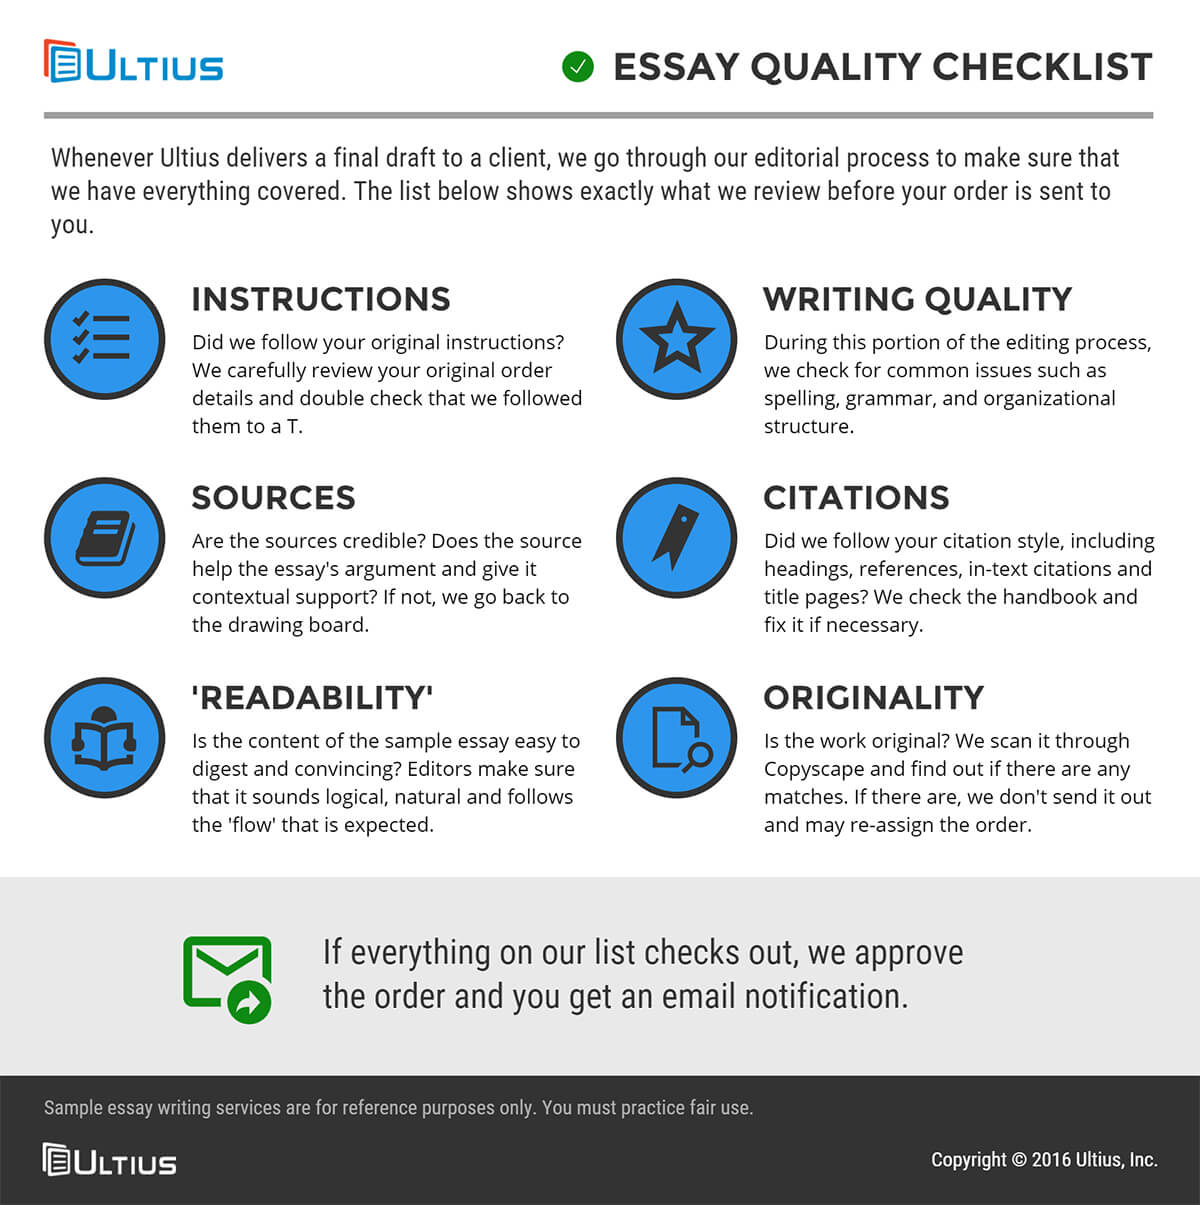 Essay Writing Service  The Best Essay  Paper Writing Services  Ultius Essay Writing Services  Quality Checklist Infographic